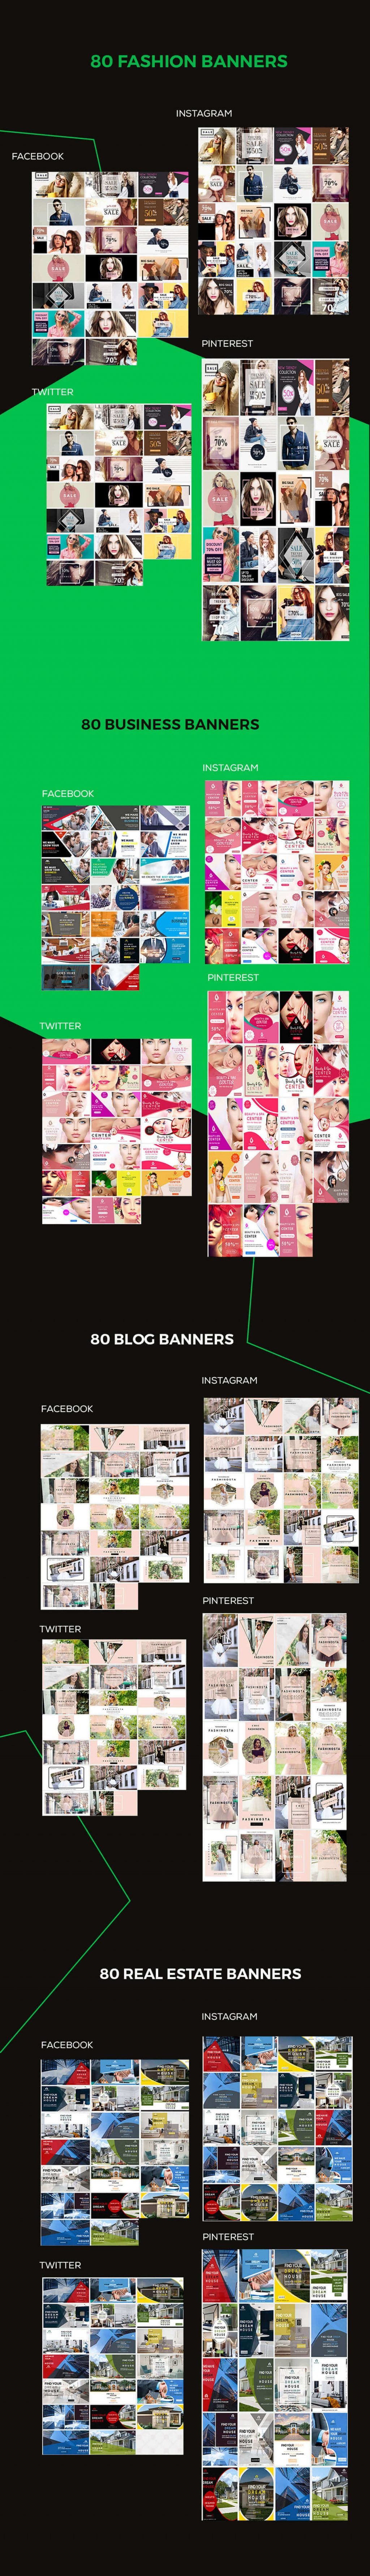 1500 Print and Web Templates - 1500 print templates bundle nifty graphic bypeople deals 6